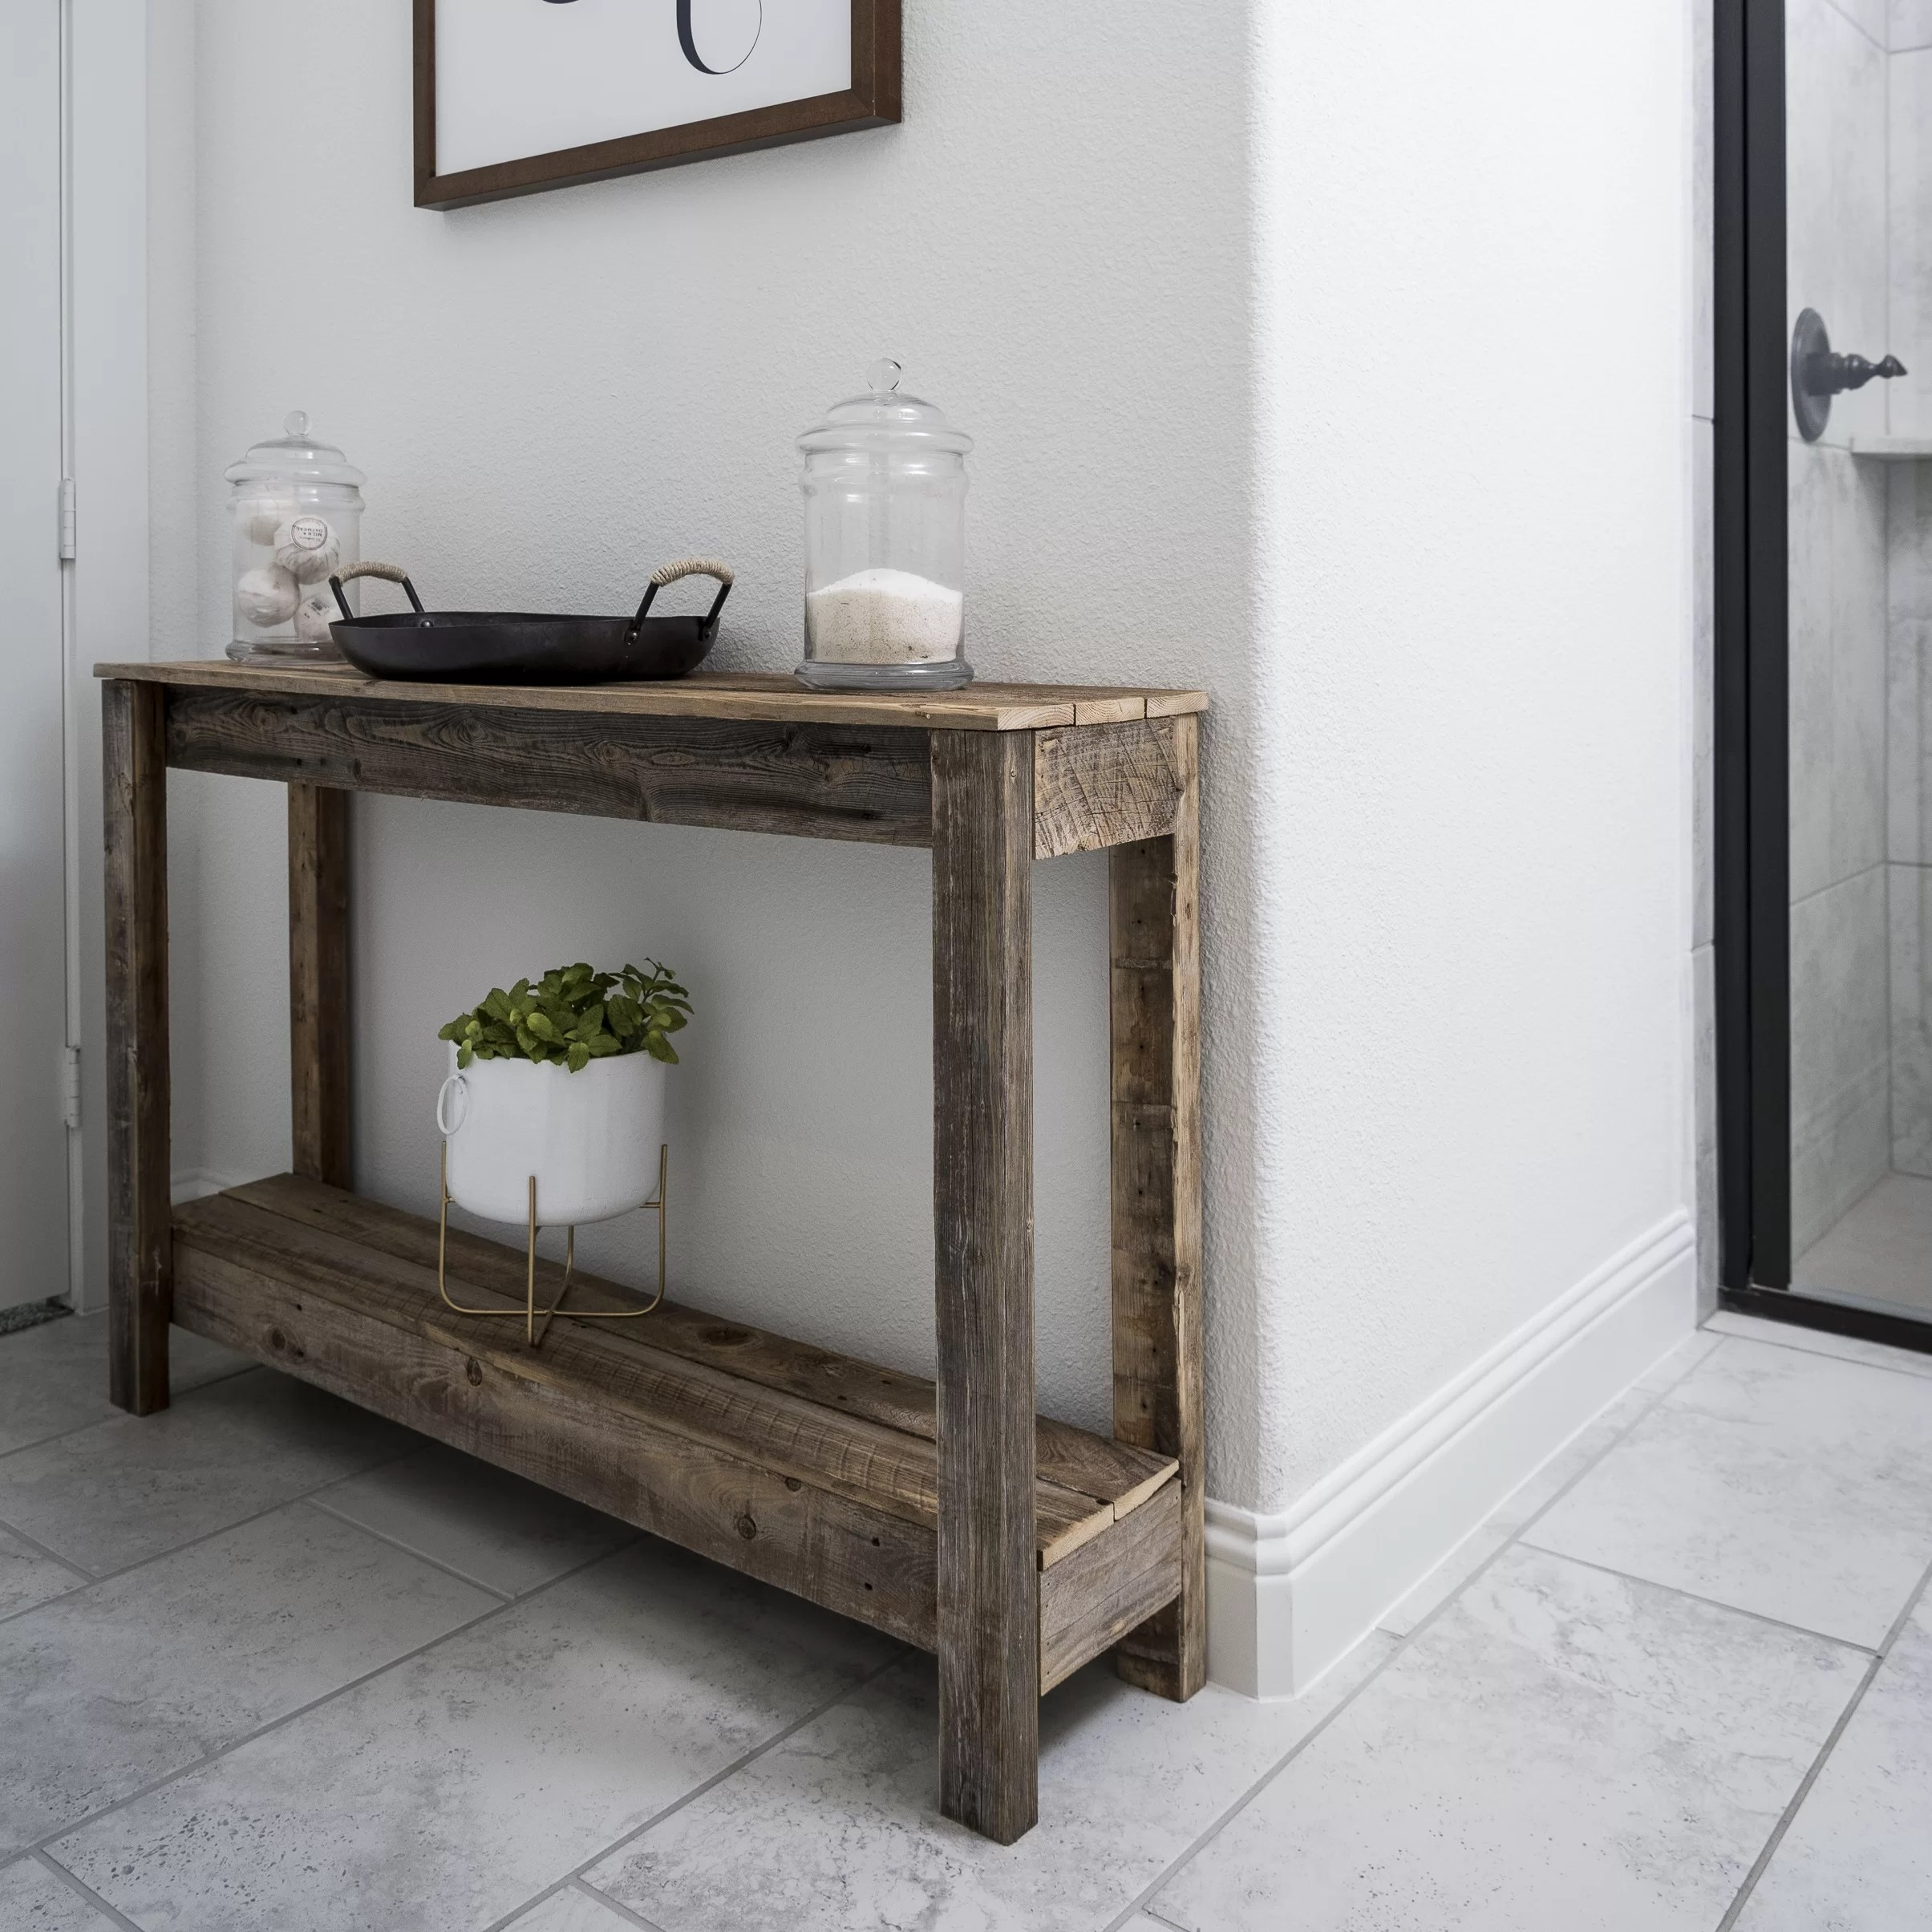 Wayfair Live Edge Console Tables You Ll Love In 2021